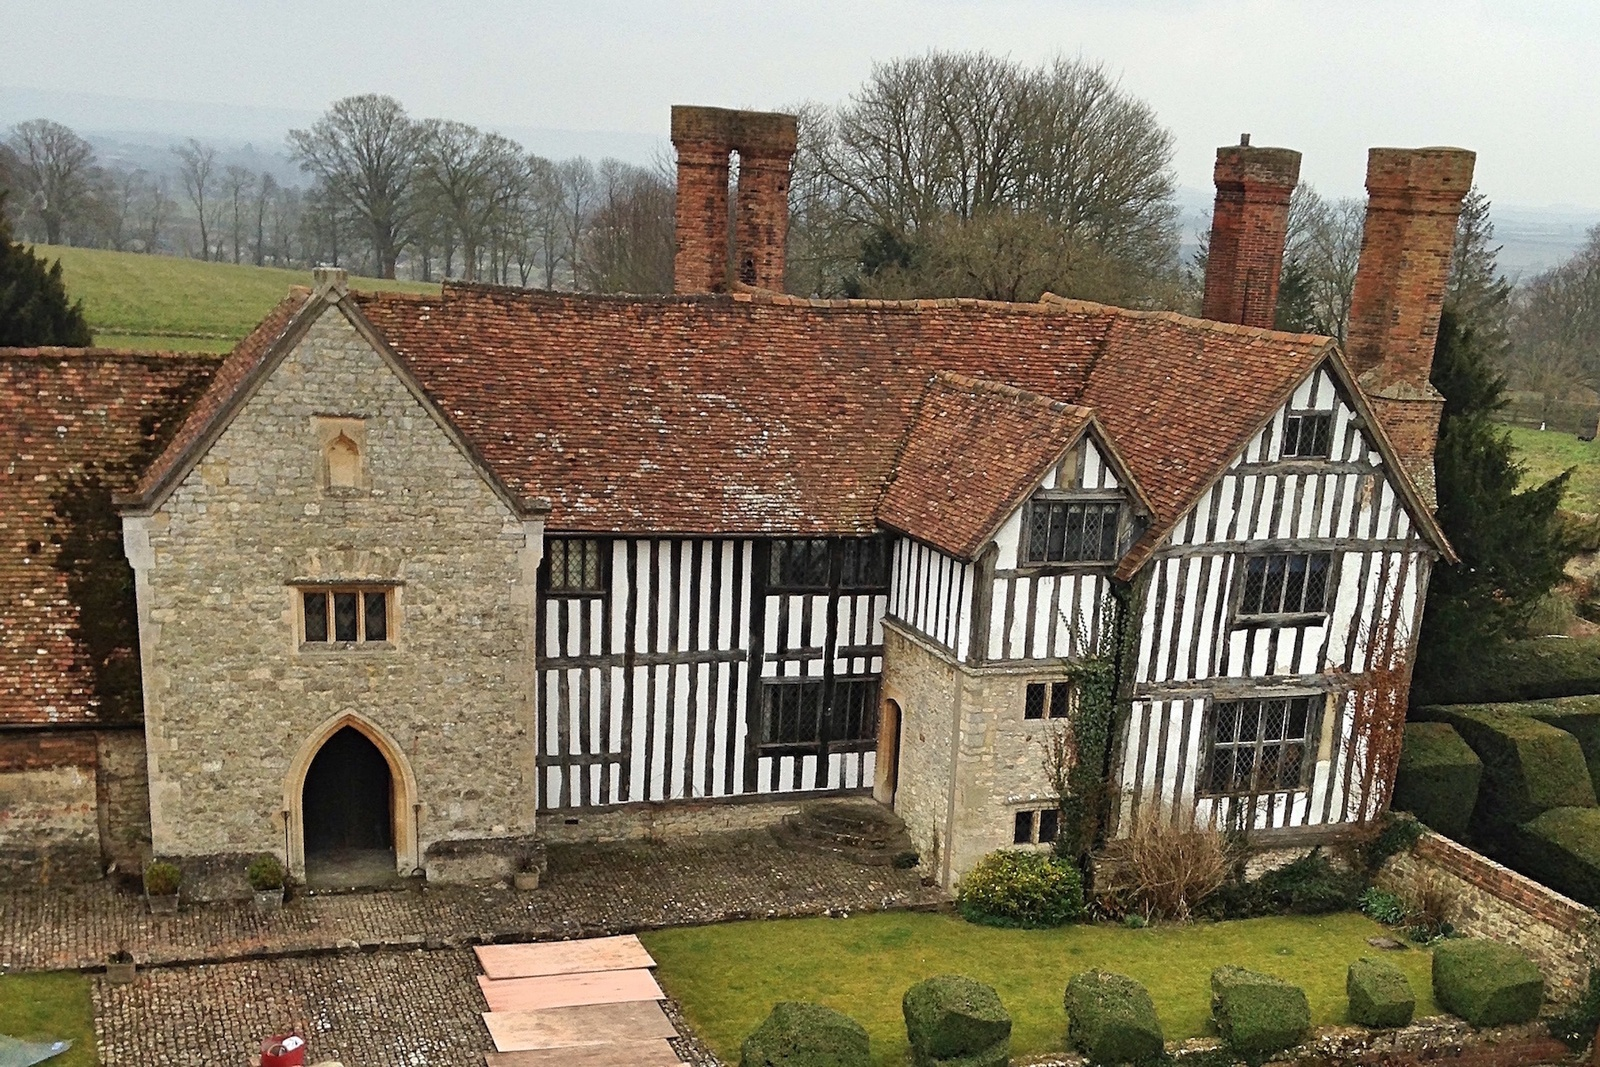 Long Crendon Manor began as a dwelling for the abbots of Notley in about 1187. Now a filming location and B&B our stoves feature in some of the bedrooms